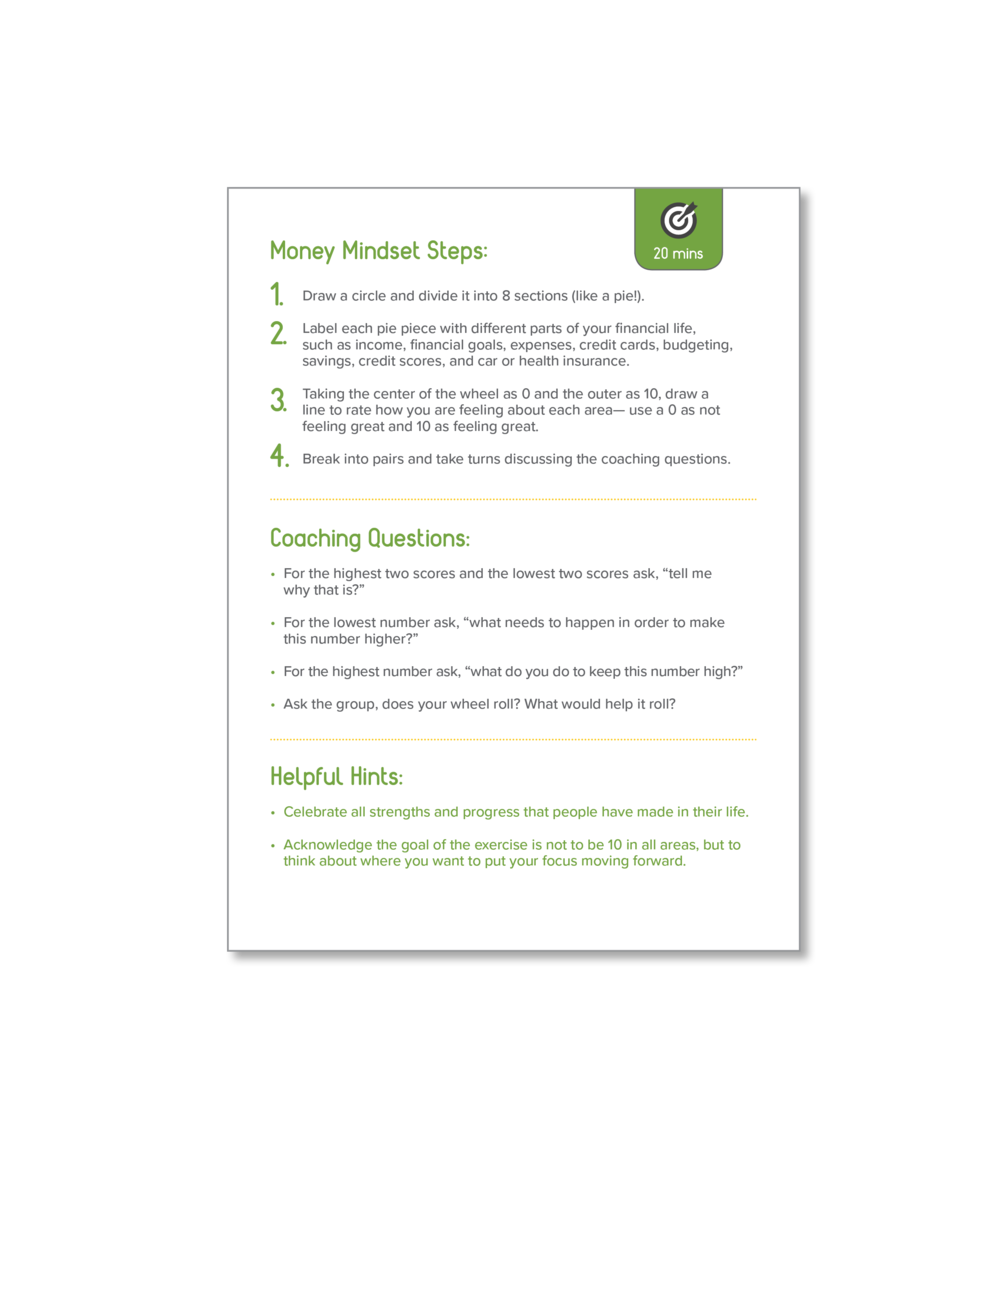 Sample Card with Shadow.png